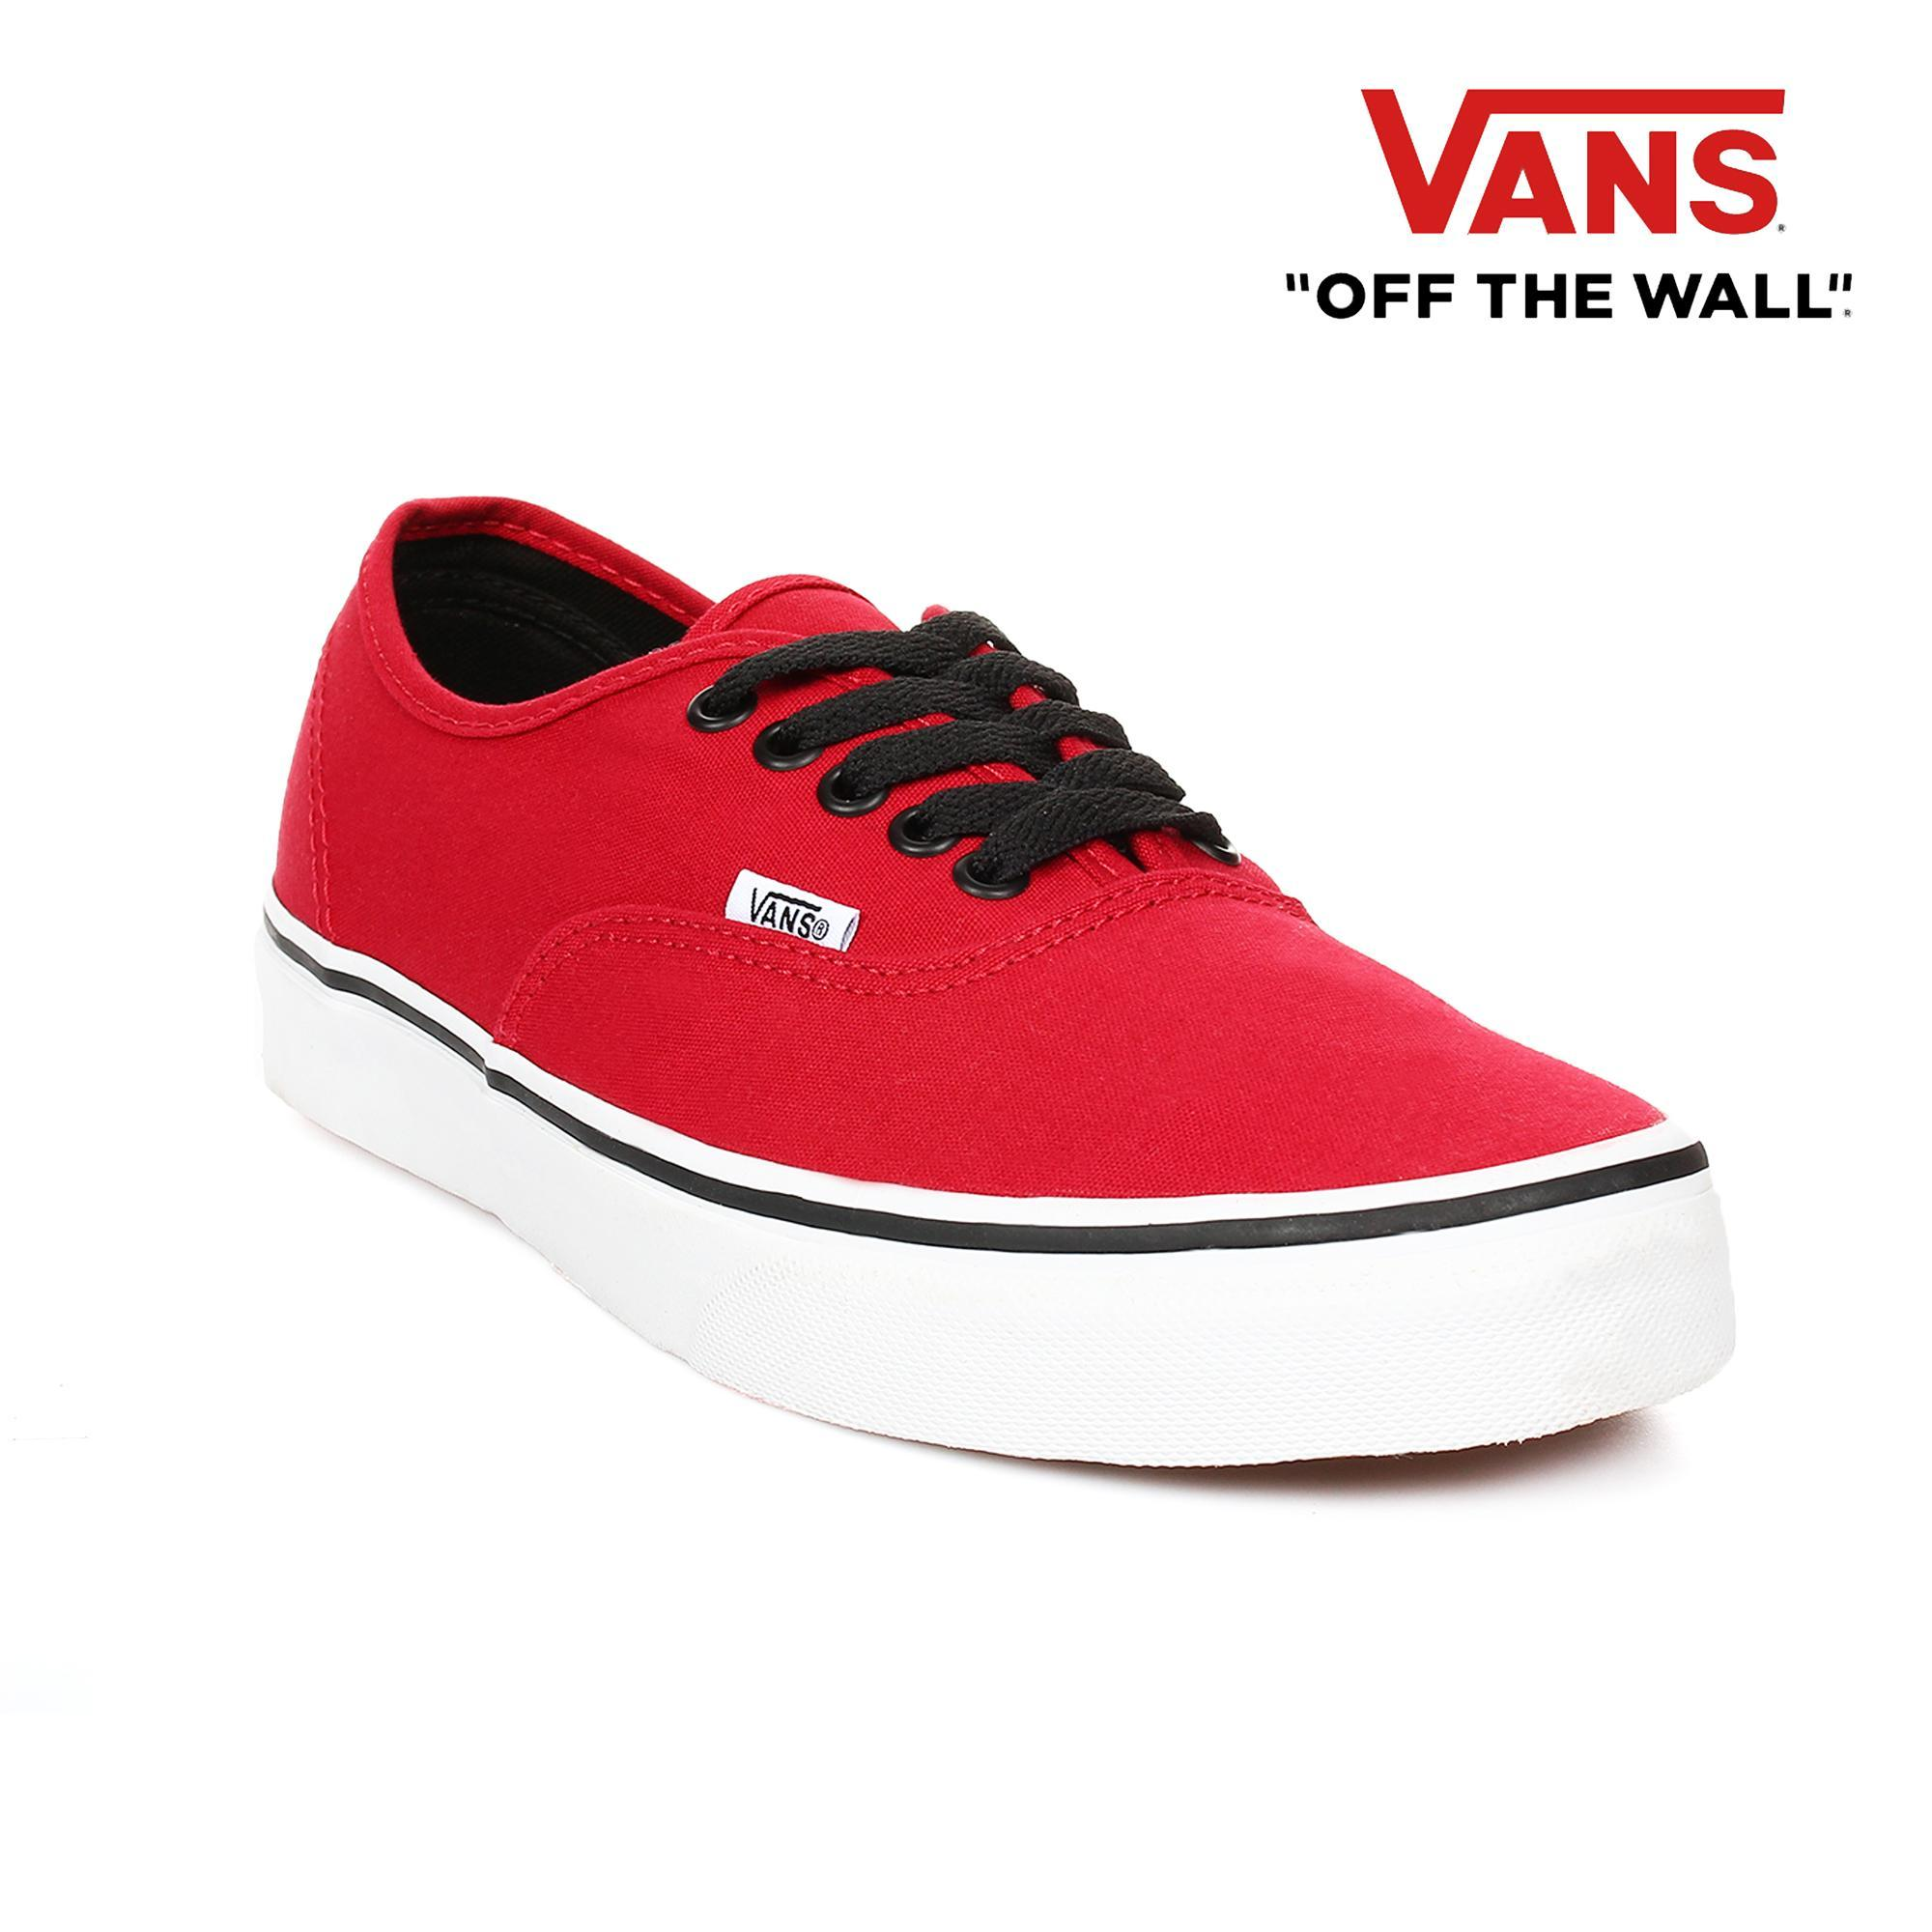 e9601c2e93ef Vans Shoes for Men Philippines - Vans Men s Shoes for sale - prices ...